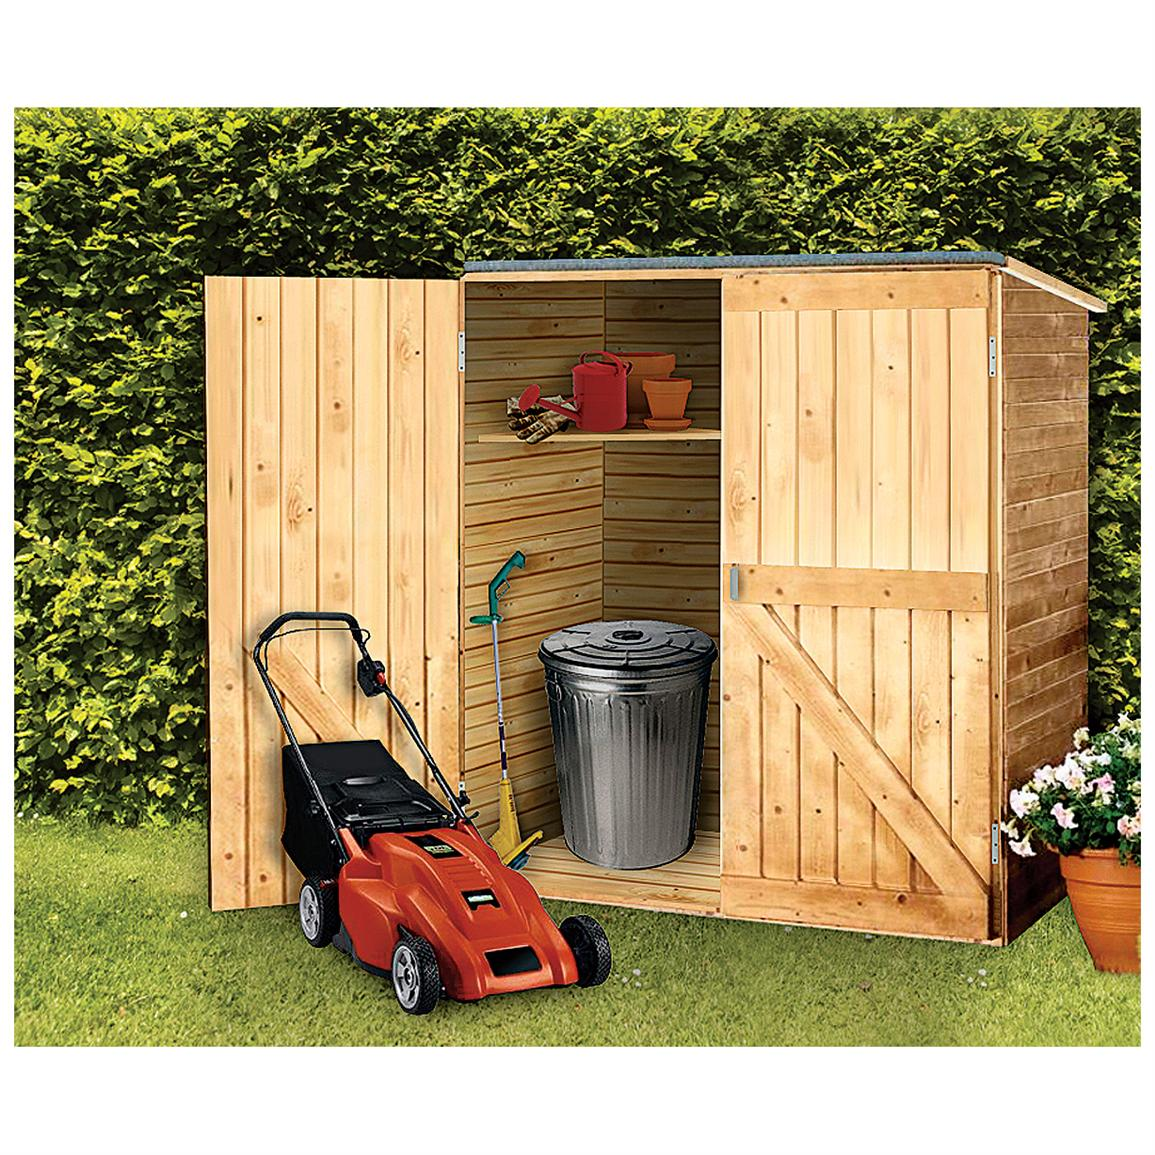 Shed blueprints wooden storage shed for Building a storage shed